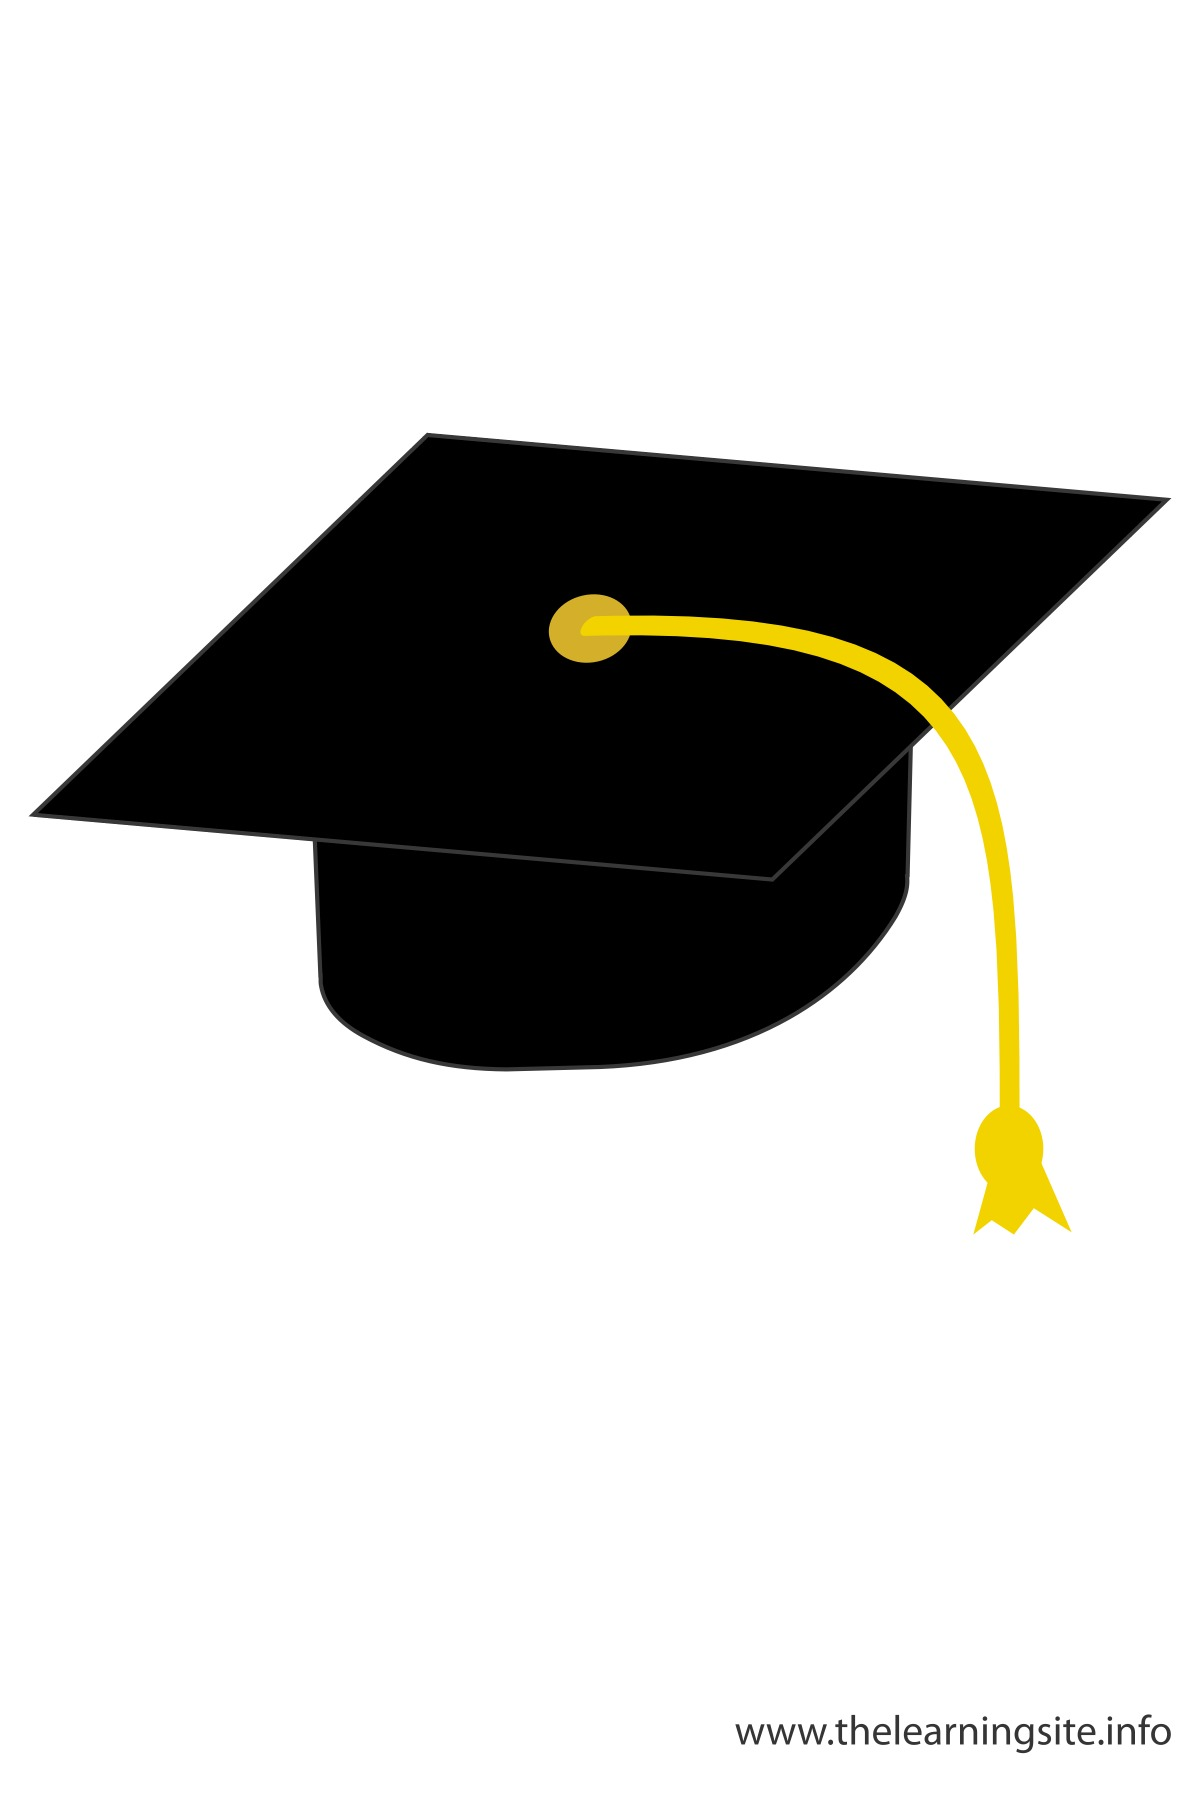 flashcard-graduation-cap-black